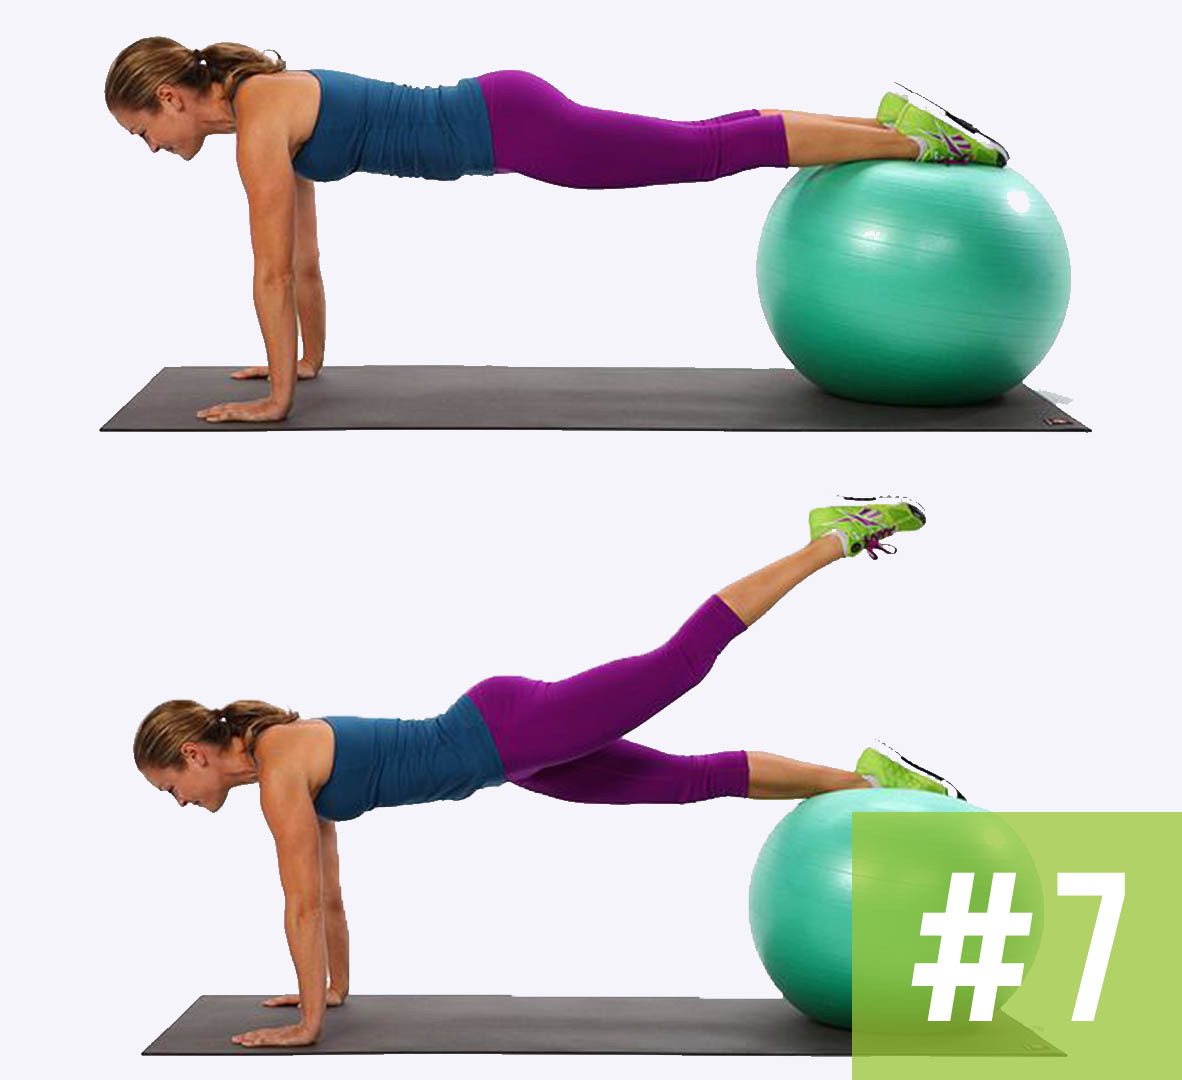 Flat Abs Exercise Ball Workout